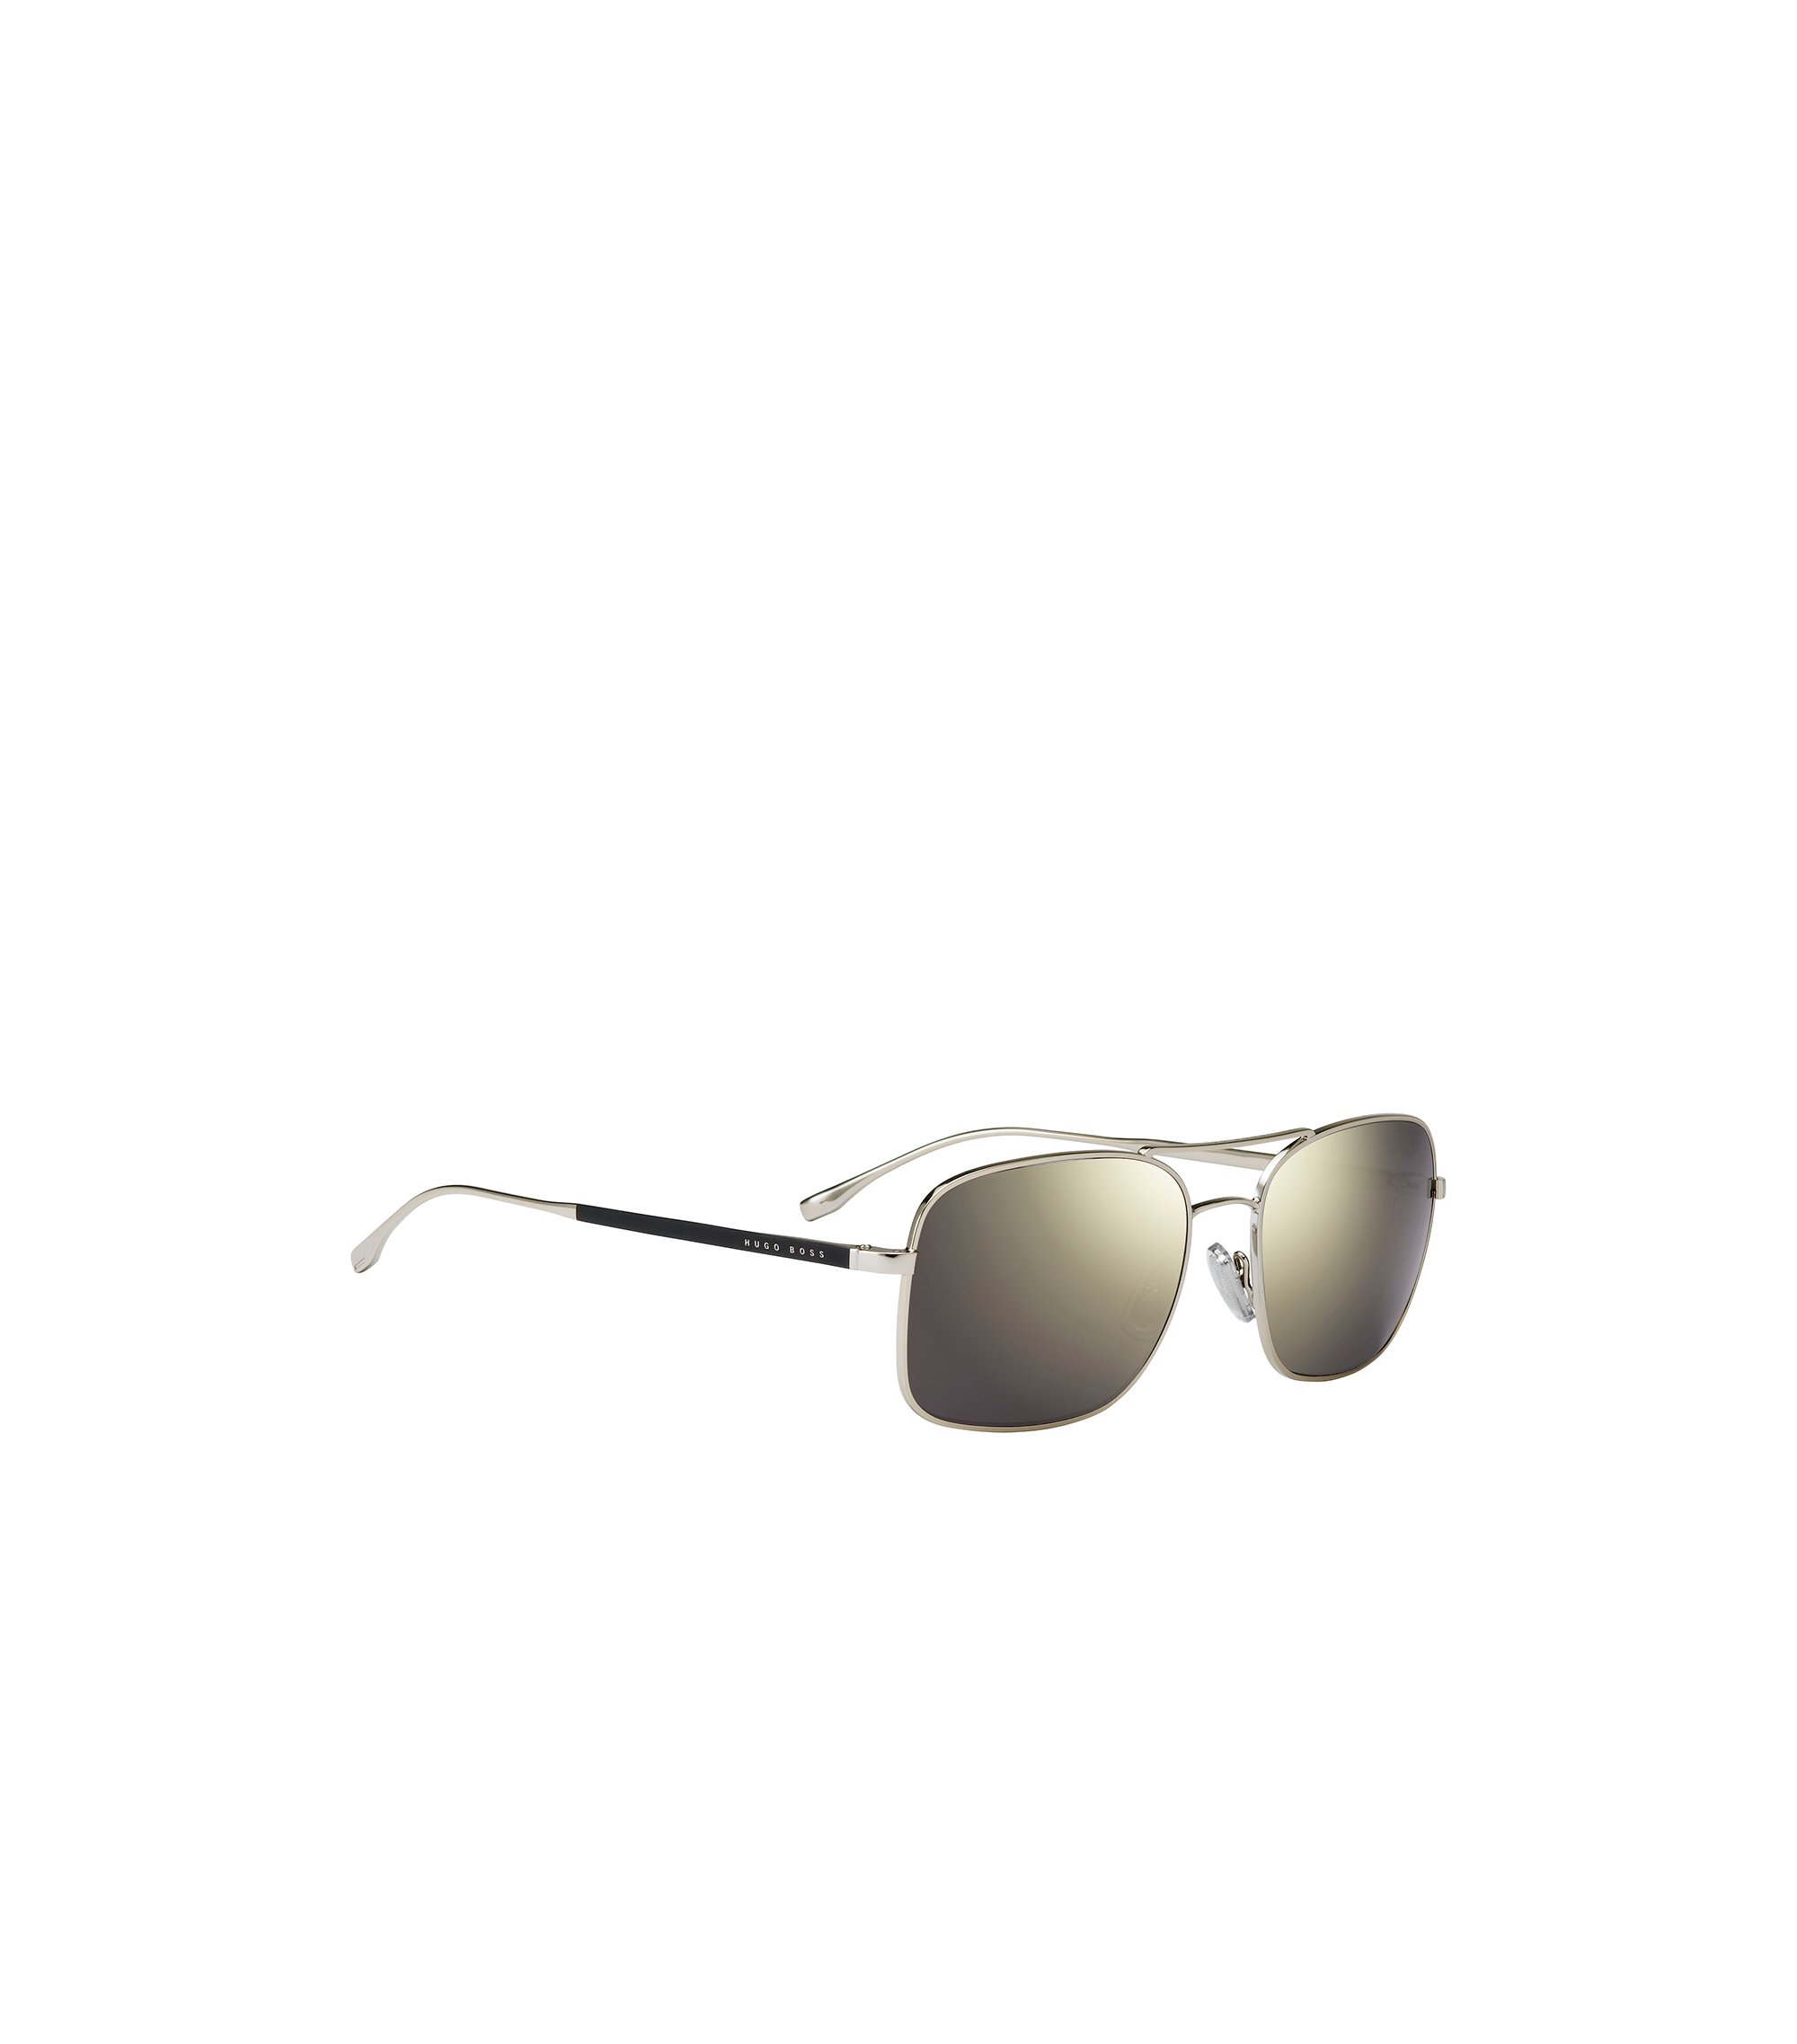 Eckige Sonnenbrille mit schmaler Metallfassung in Gold-Optik: 'BOSS 0781/S', Assorted-Pre-Pack